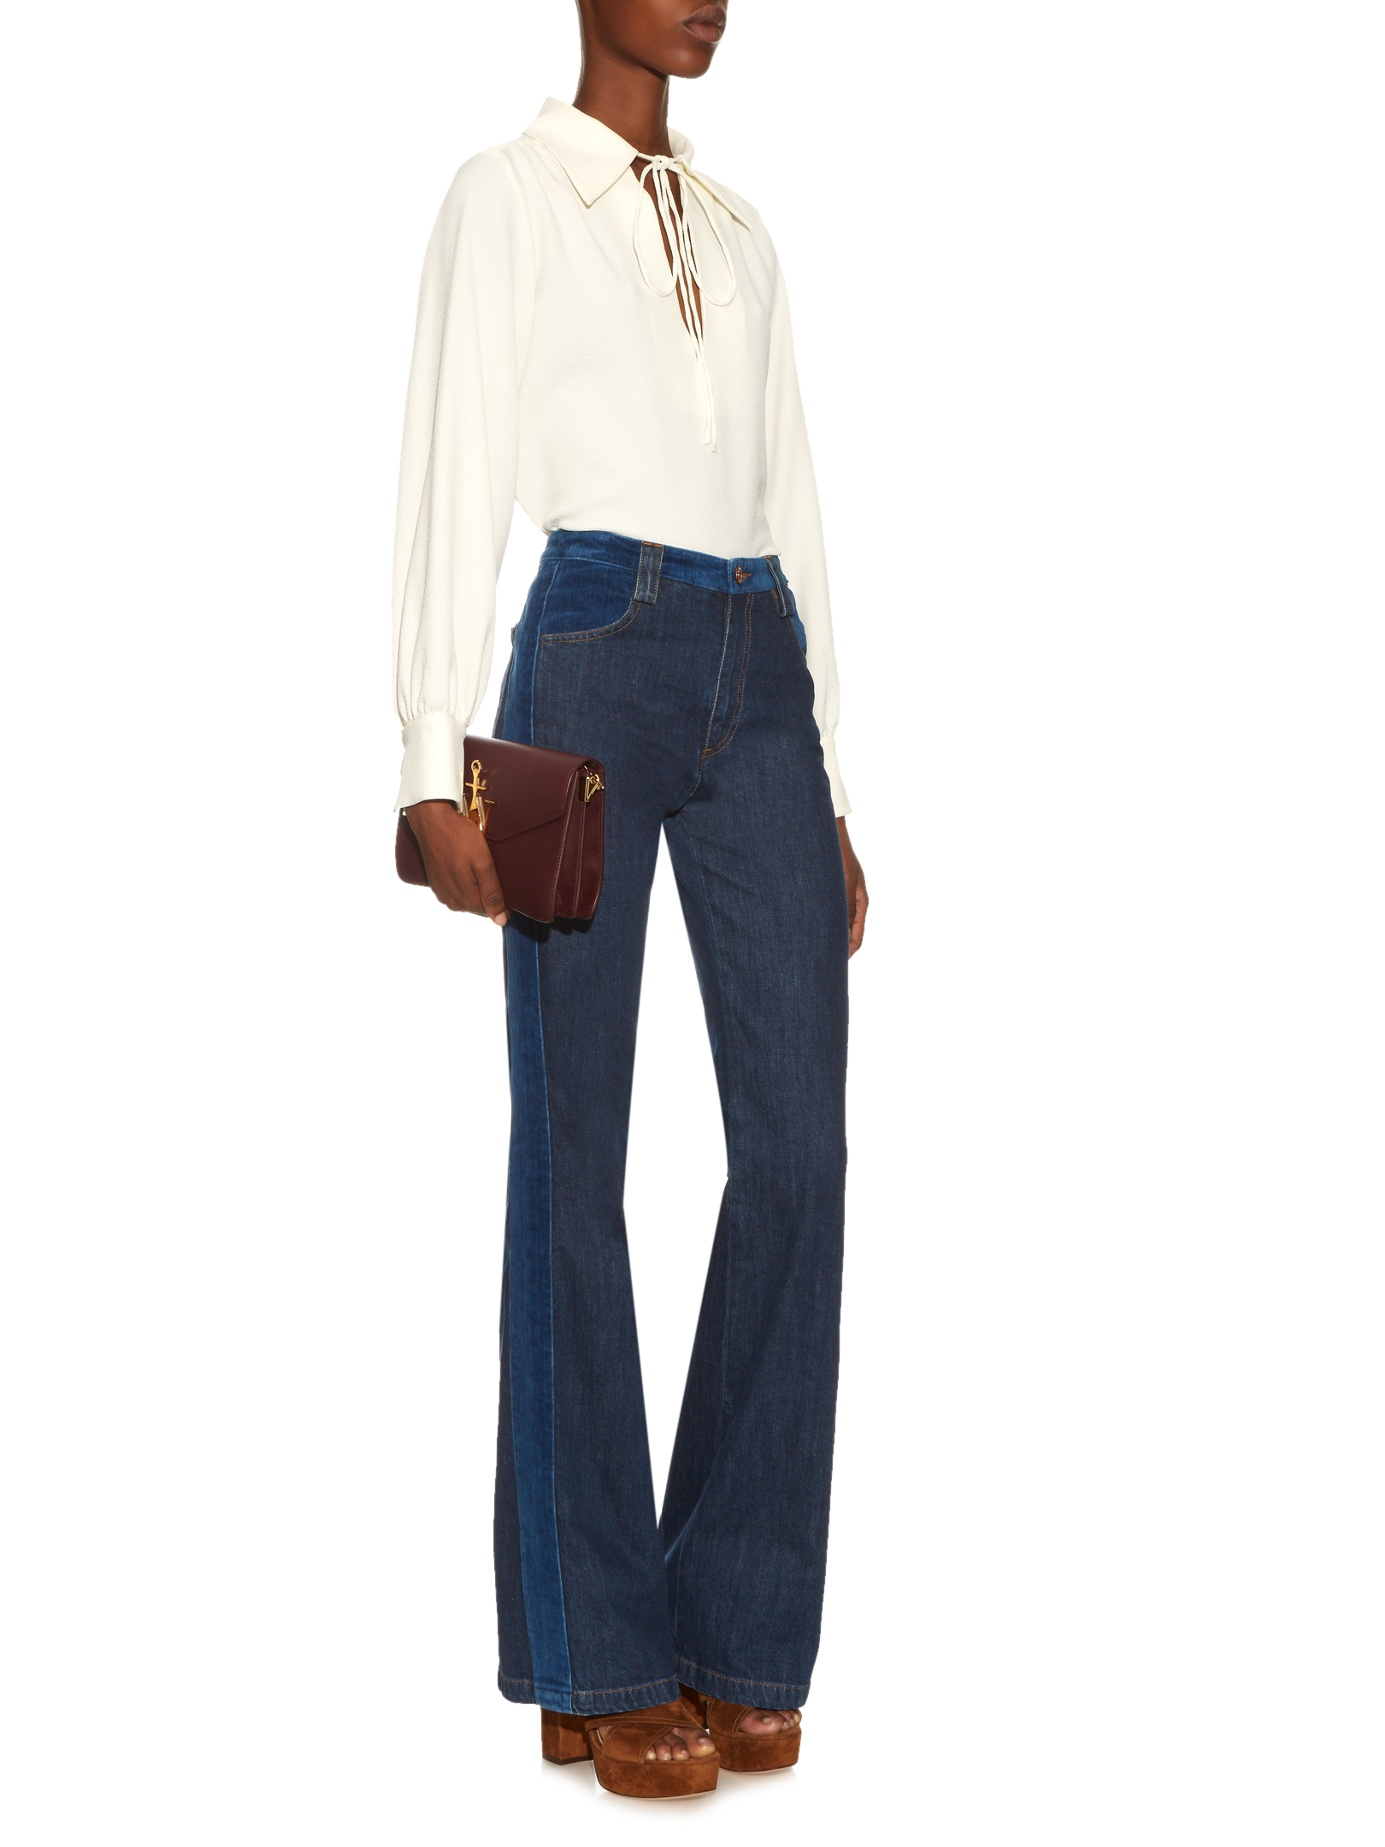 See By Chloé   Mid Rise Flared Jeans , £135 (used to be £225) -  Have been in love with those romantic flares for a while now but have bought a similar style from MIH a while ago so trying to be good...